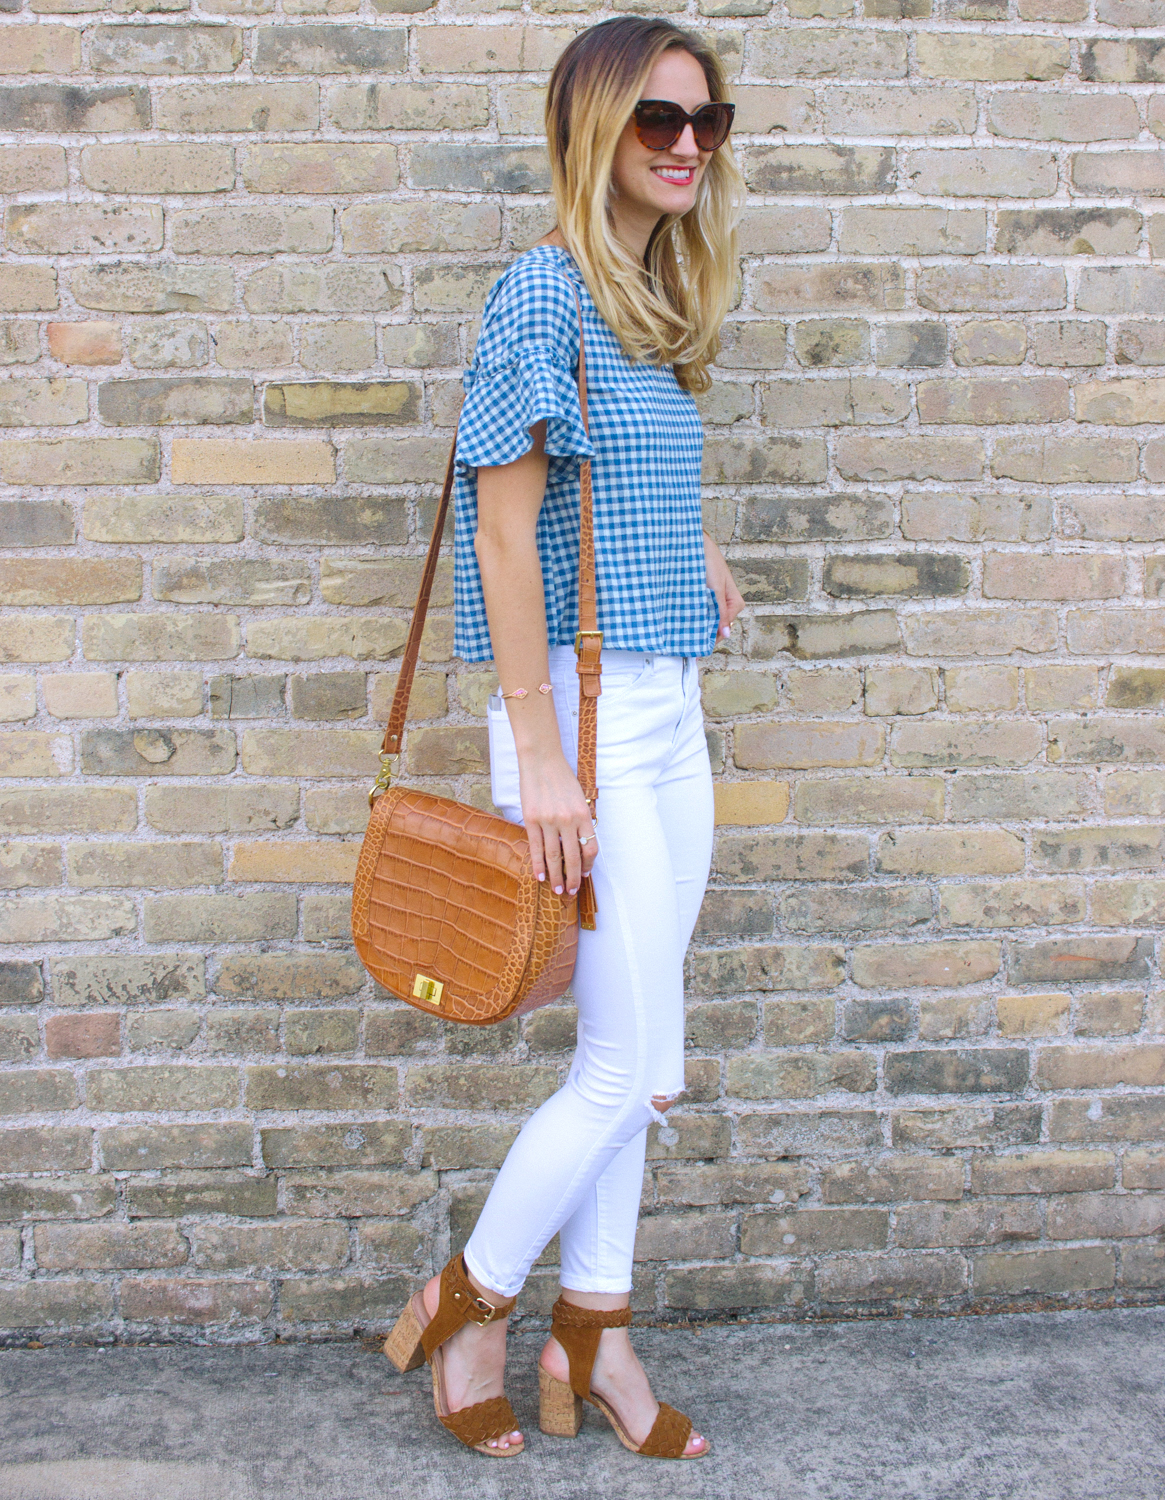 livvyland-blog-olivia-watson-goodnight-macaroon-ruffle-blue-gingham-top-white-topshop-jamie-skinny-jeans-austin-texas-fashion-blogger-6